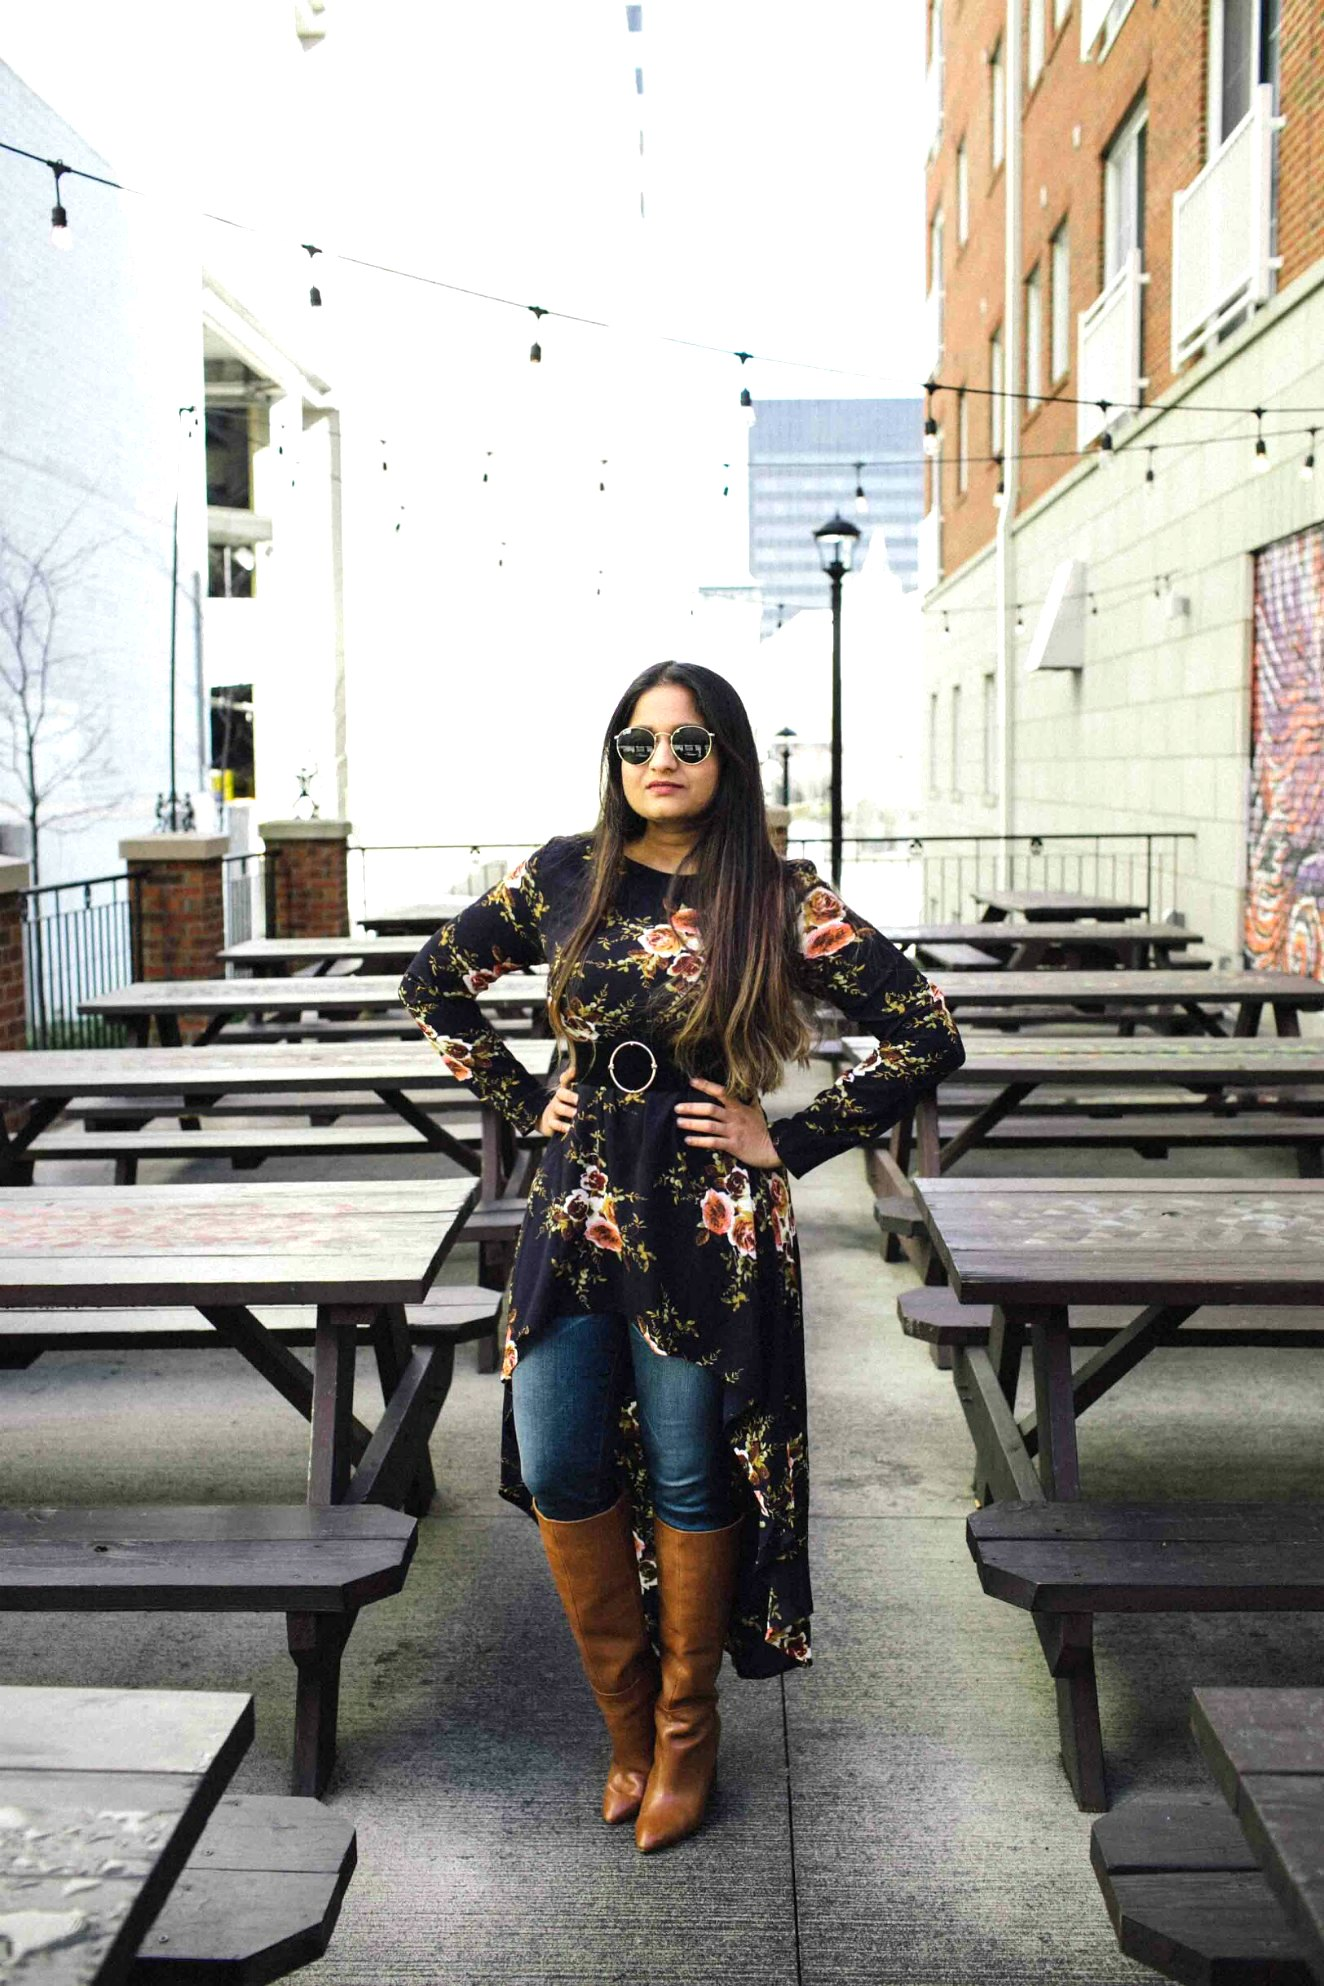 Lifestyle BLog Dreaming Loud wearing Shien Flower Print Dip Hem Longline Trapeze hi-low Top with Ag skinny jeans1 | SheIn High Low Tunic Top styled by popular Ohio modest fashion blogger, Dreaming Loud